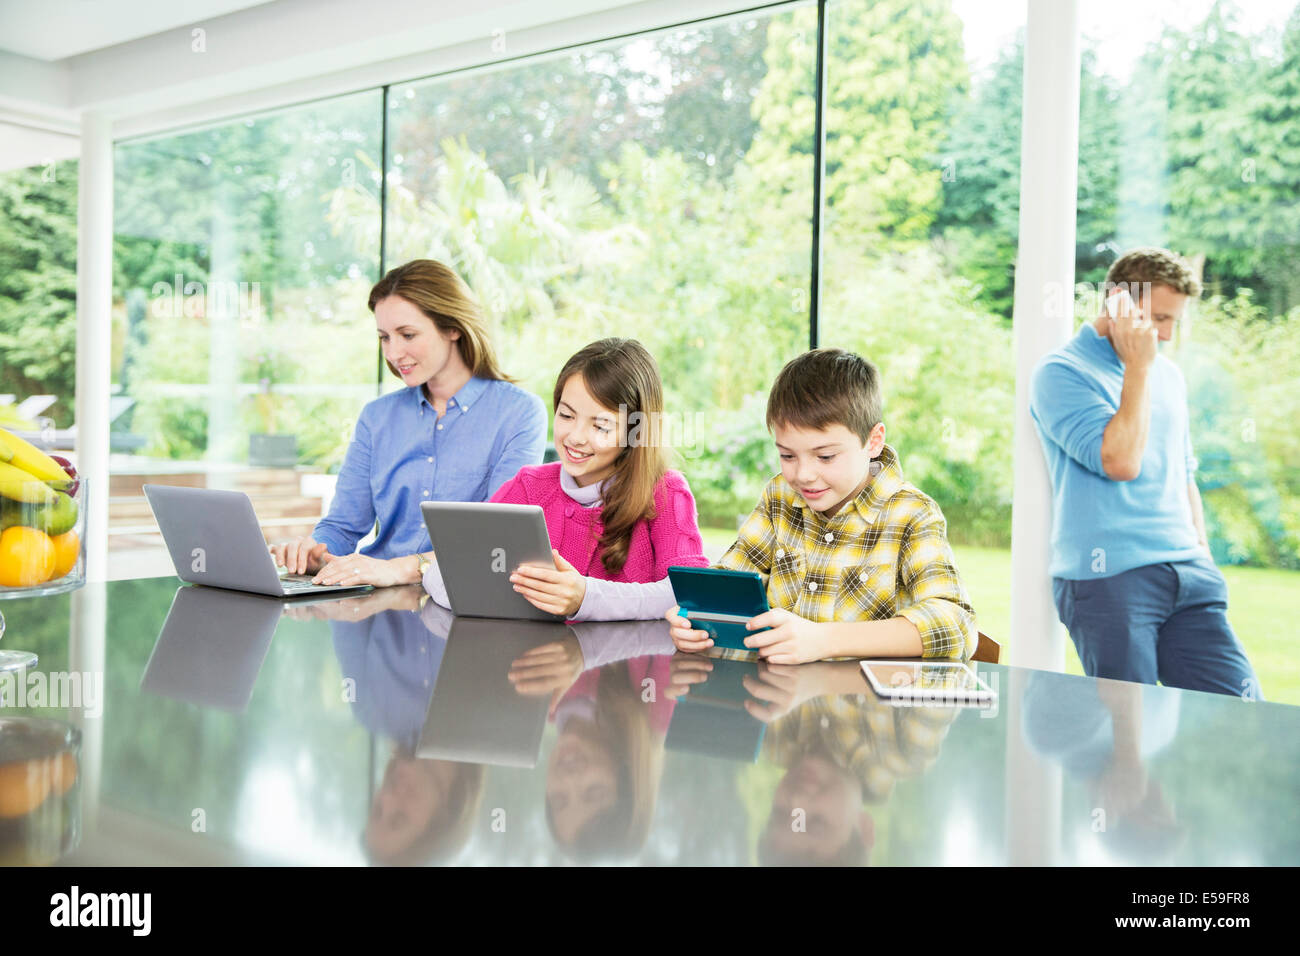 Family using technology in kitchen - Stock Image